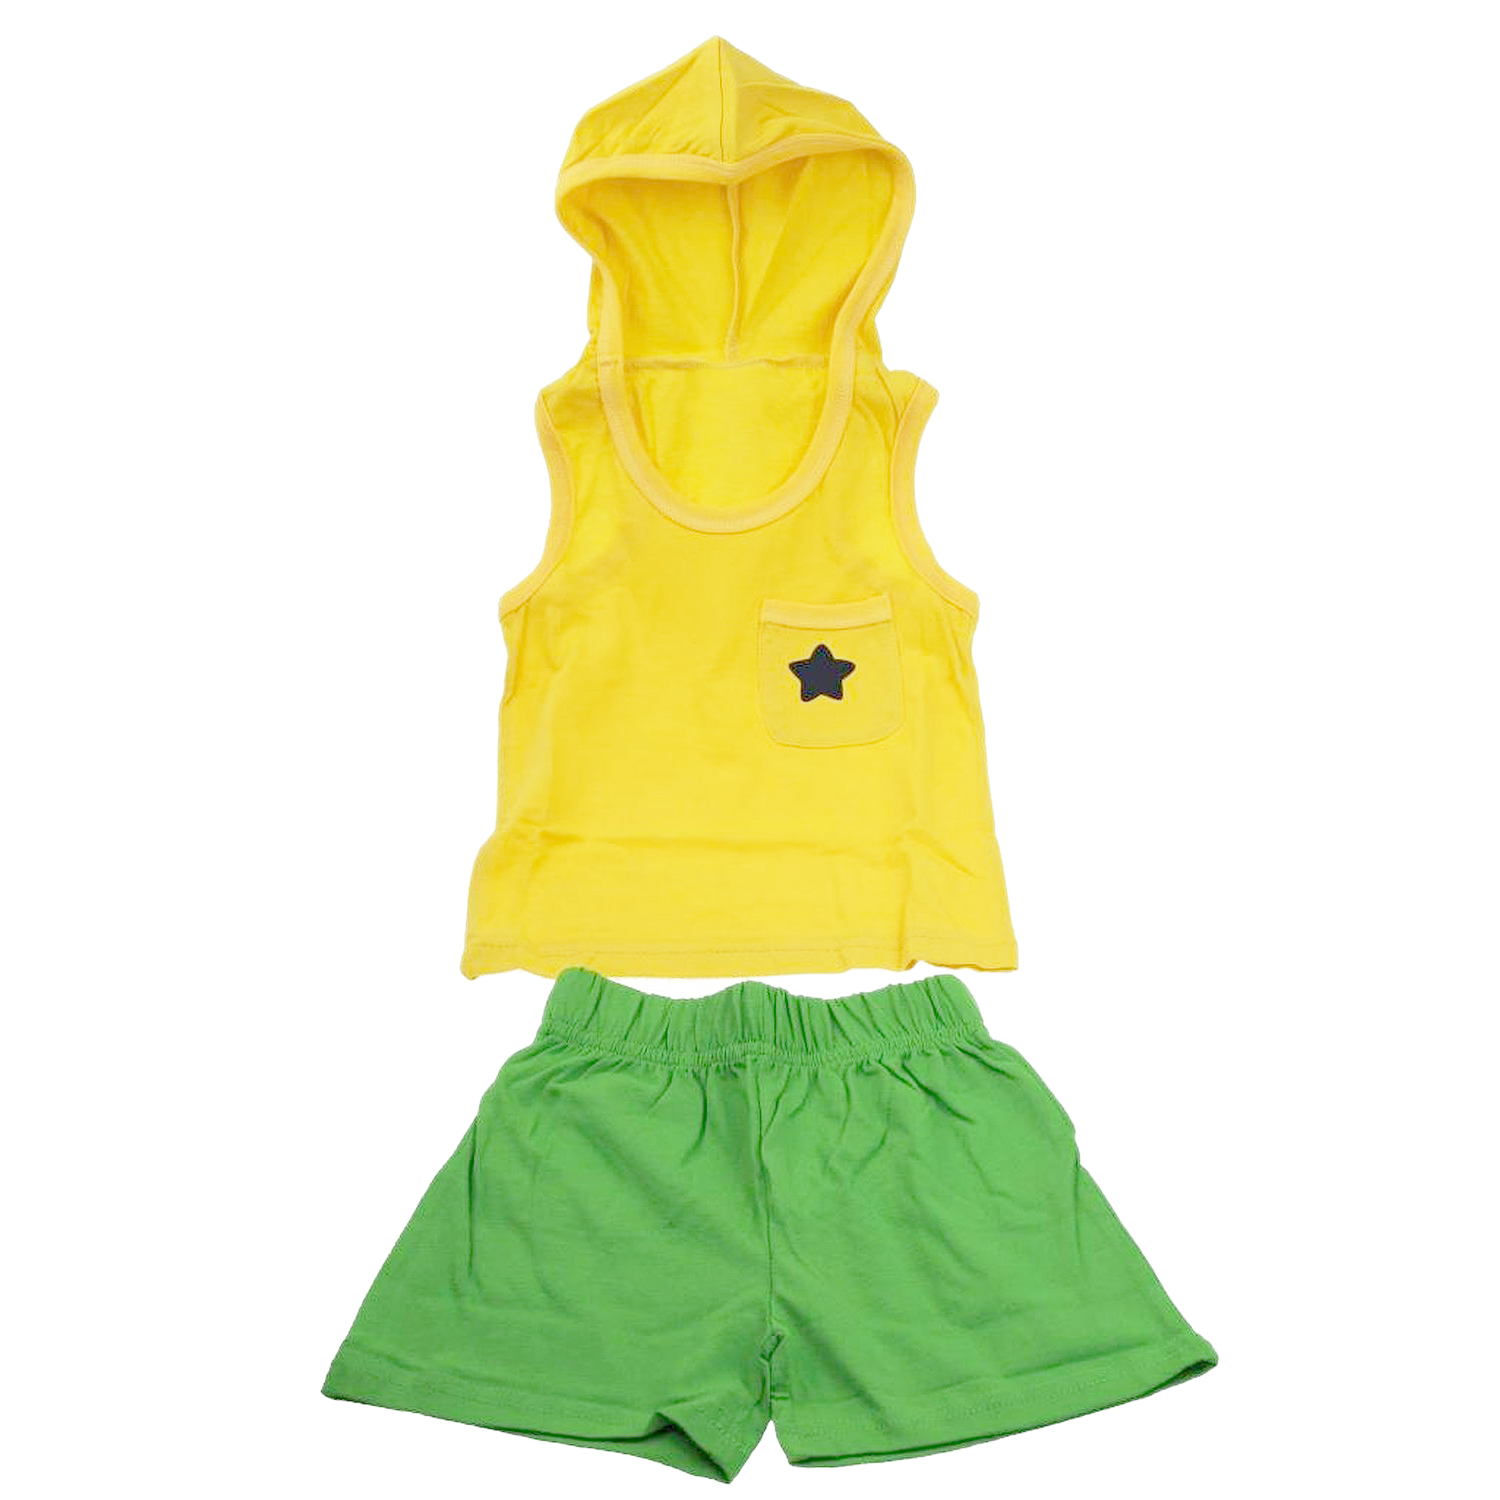 boy girl children clothing cotton summer baby kids cloth suit set vest + short hooded sports sets star yellow 130cm